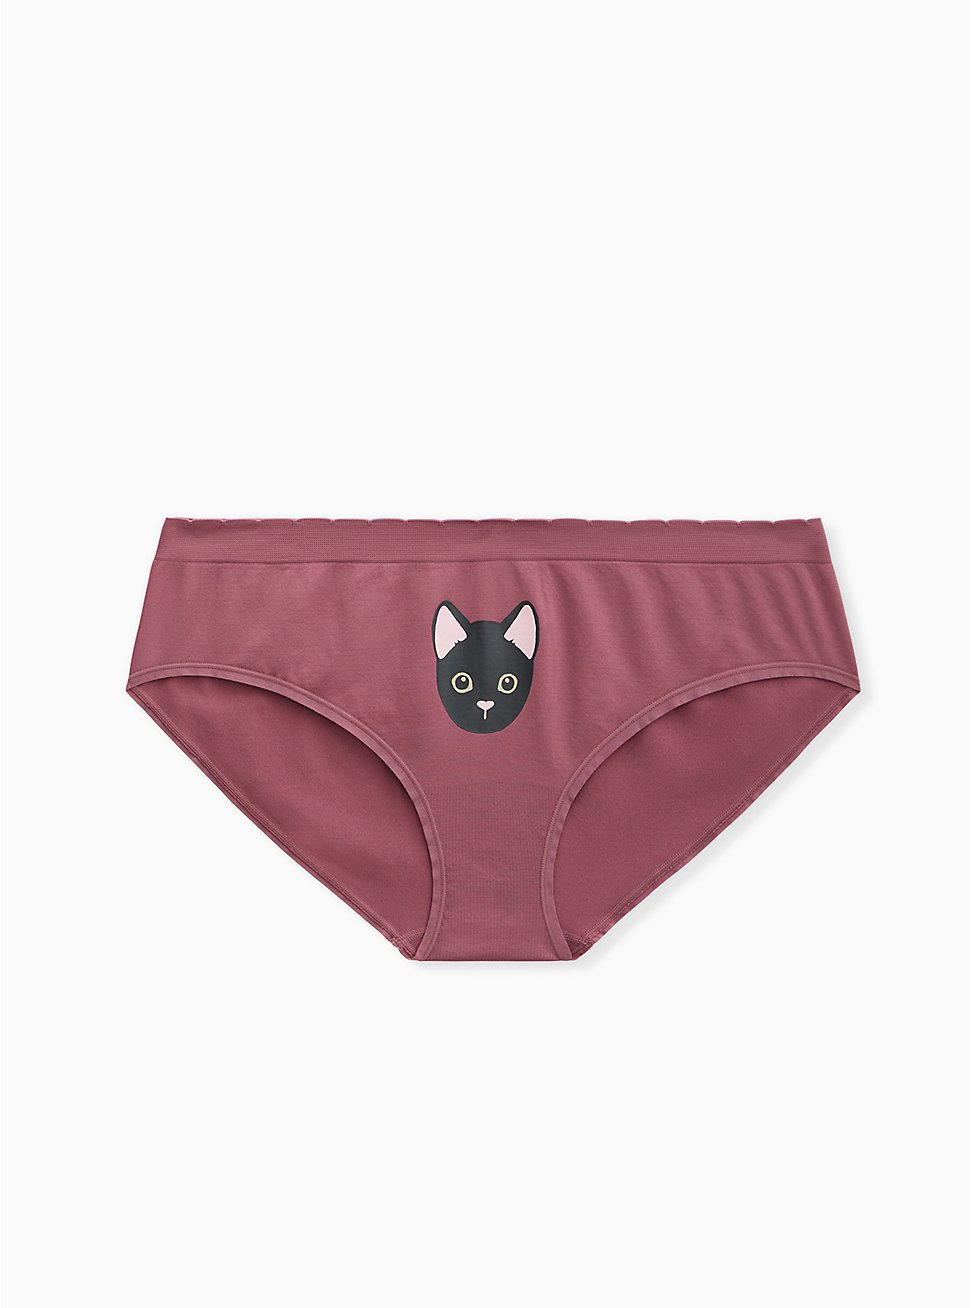 Plus Size Purple Cute Kitty Seamless Hipster Panty, CUTE KITTY, hi-res